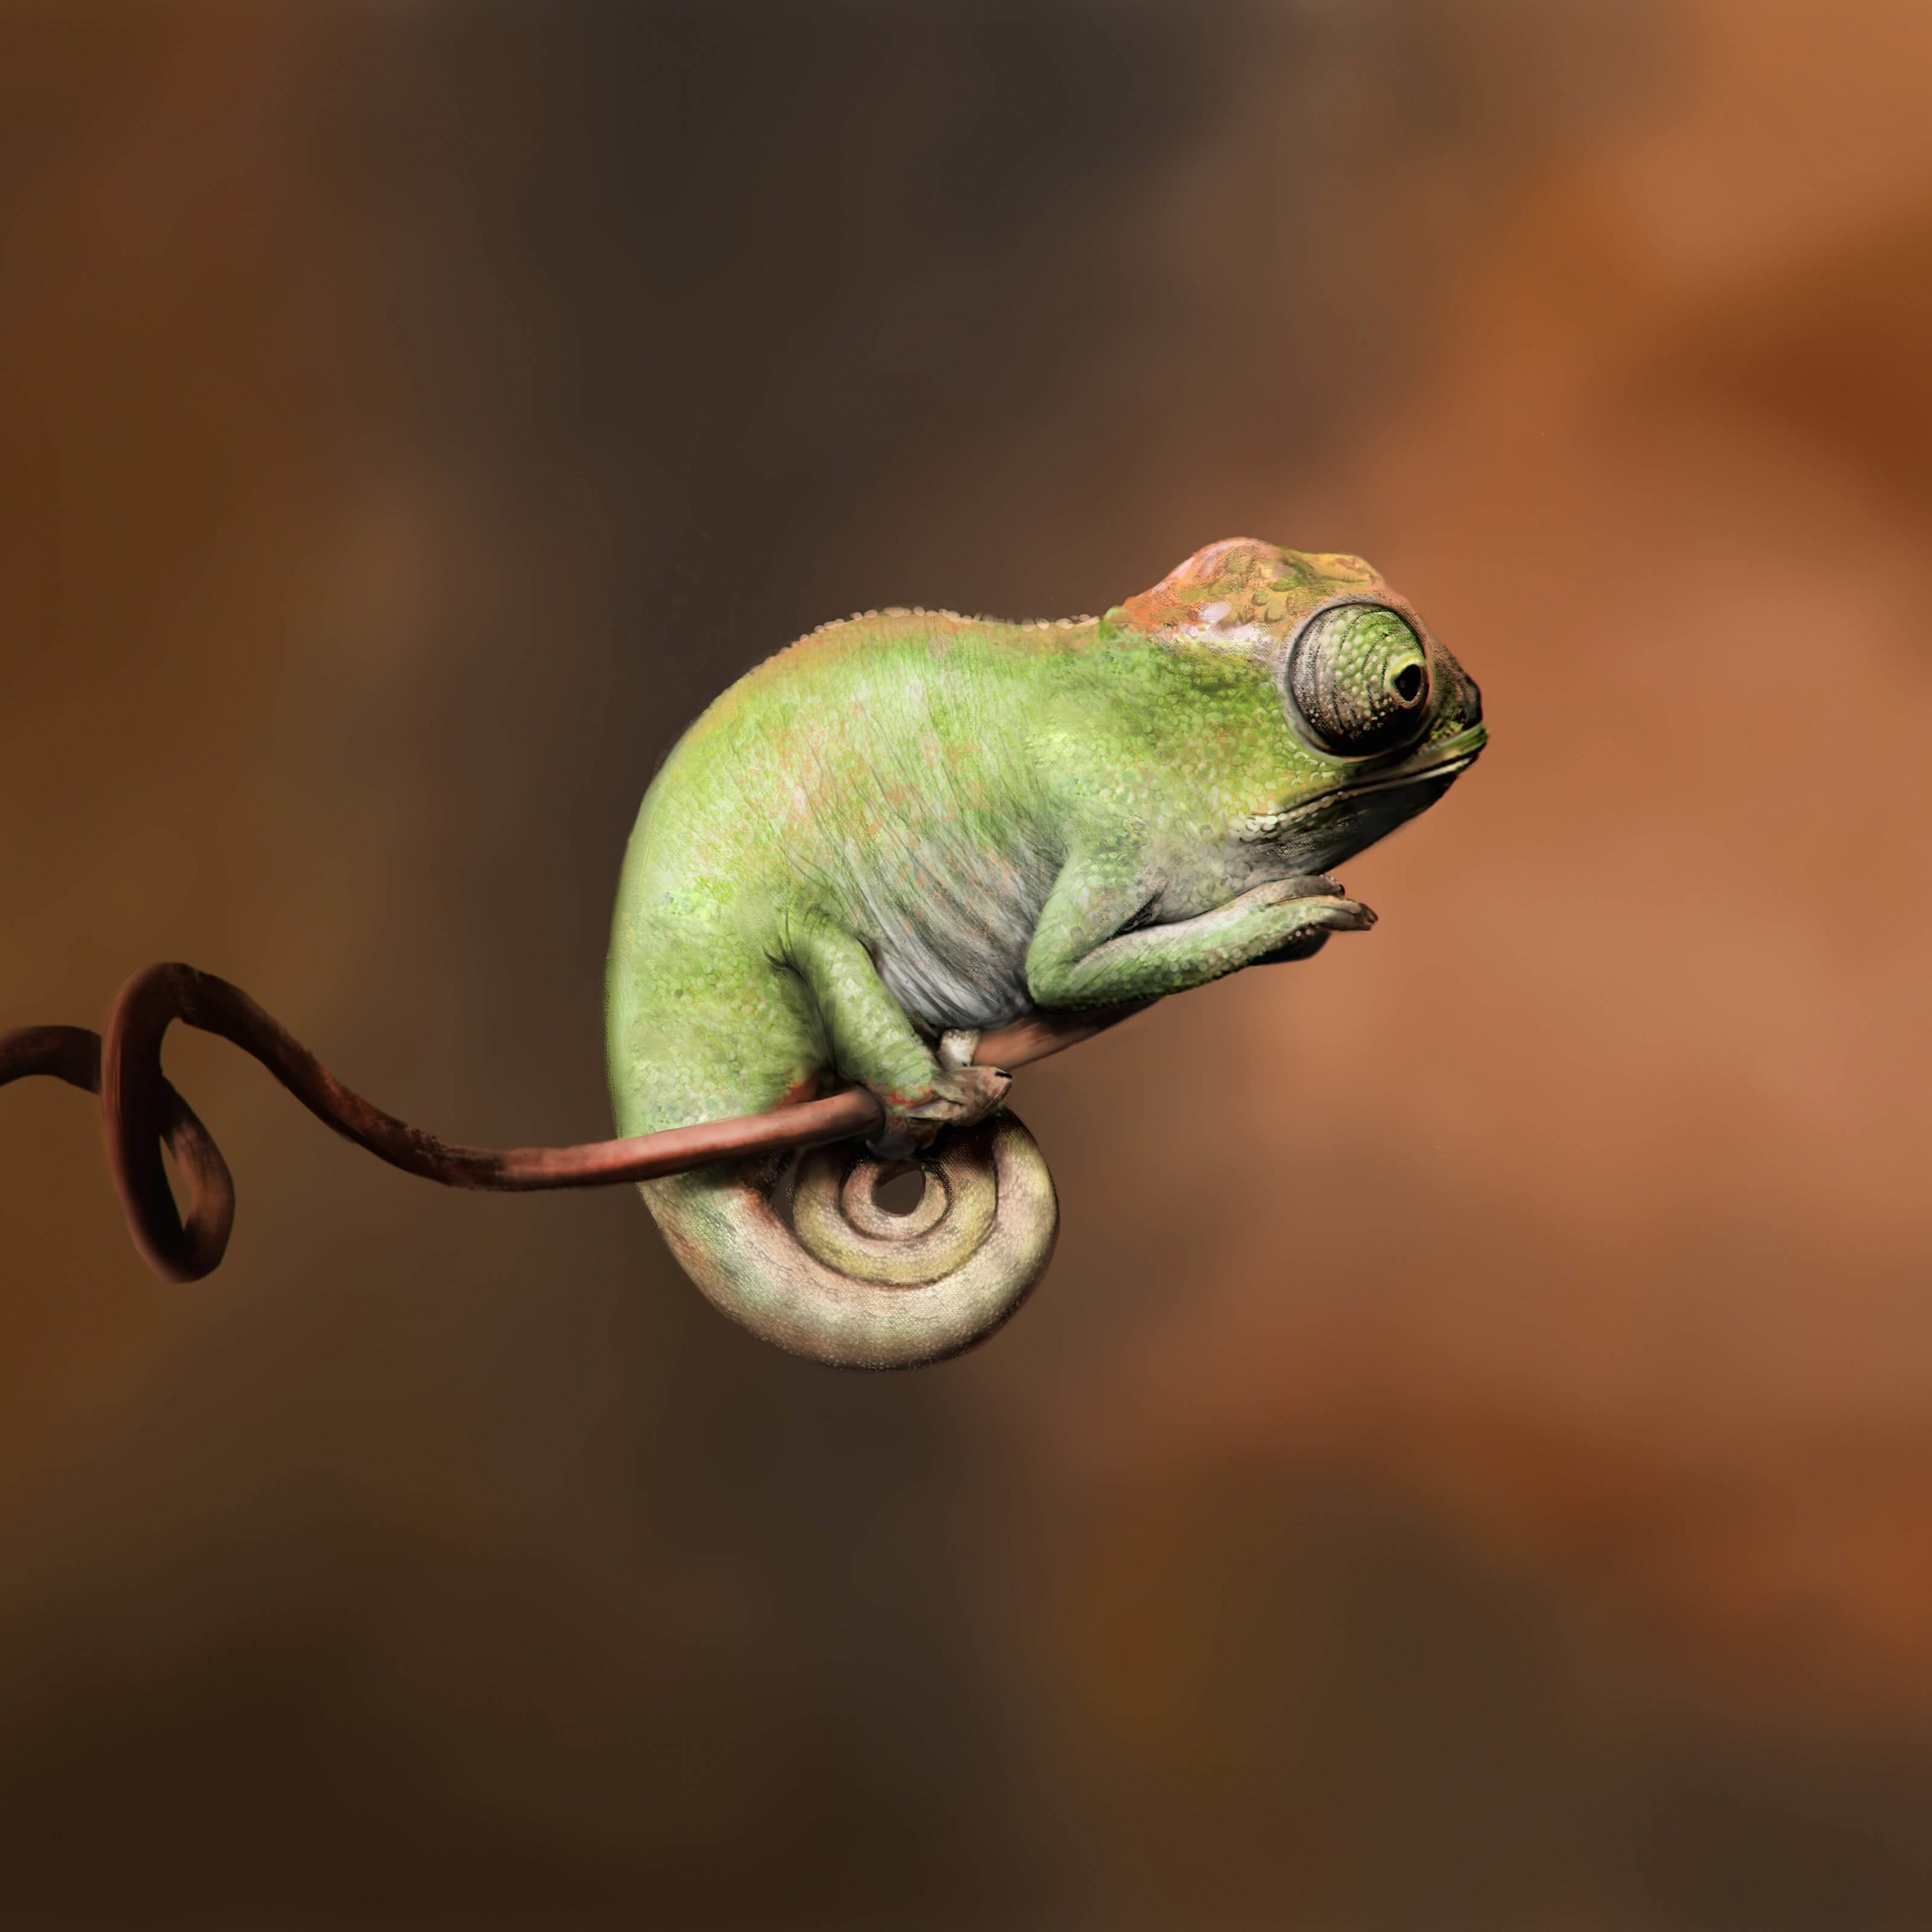 Baby Chameleon Perching On a Twisted Branch Wallpaper for Apple iPad Air